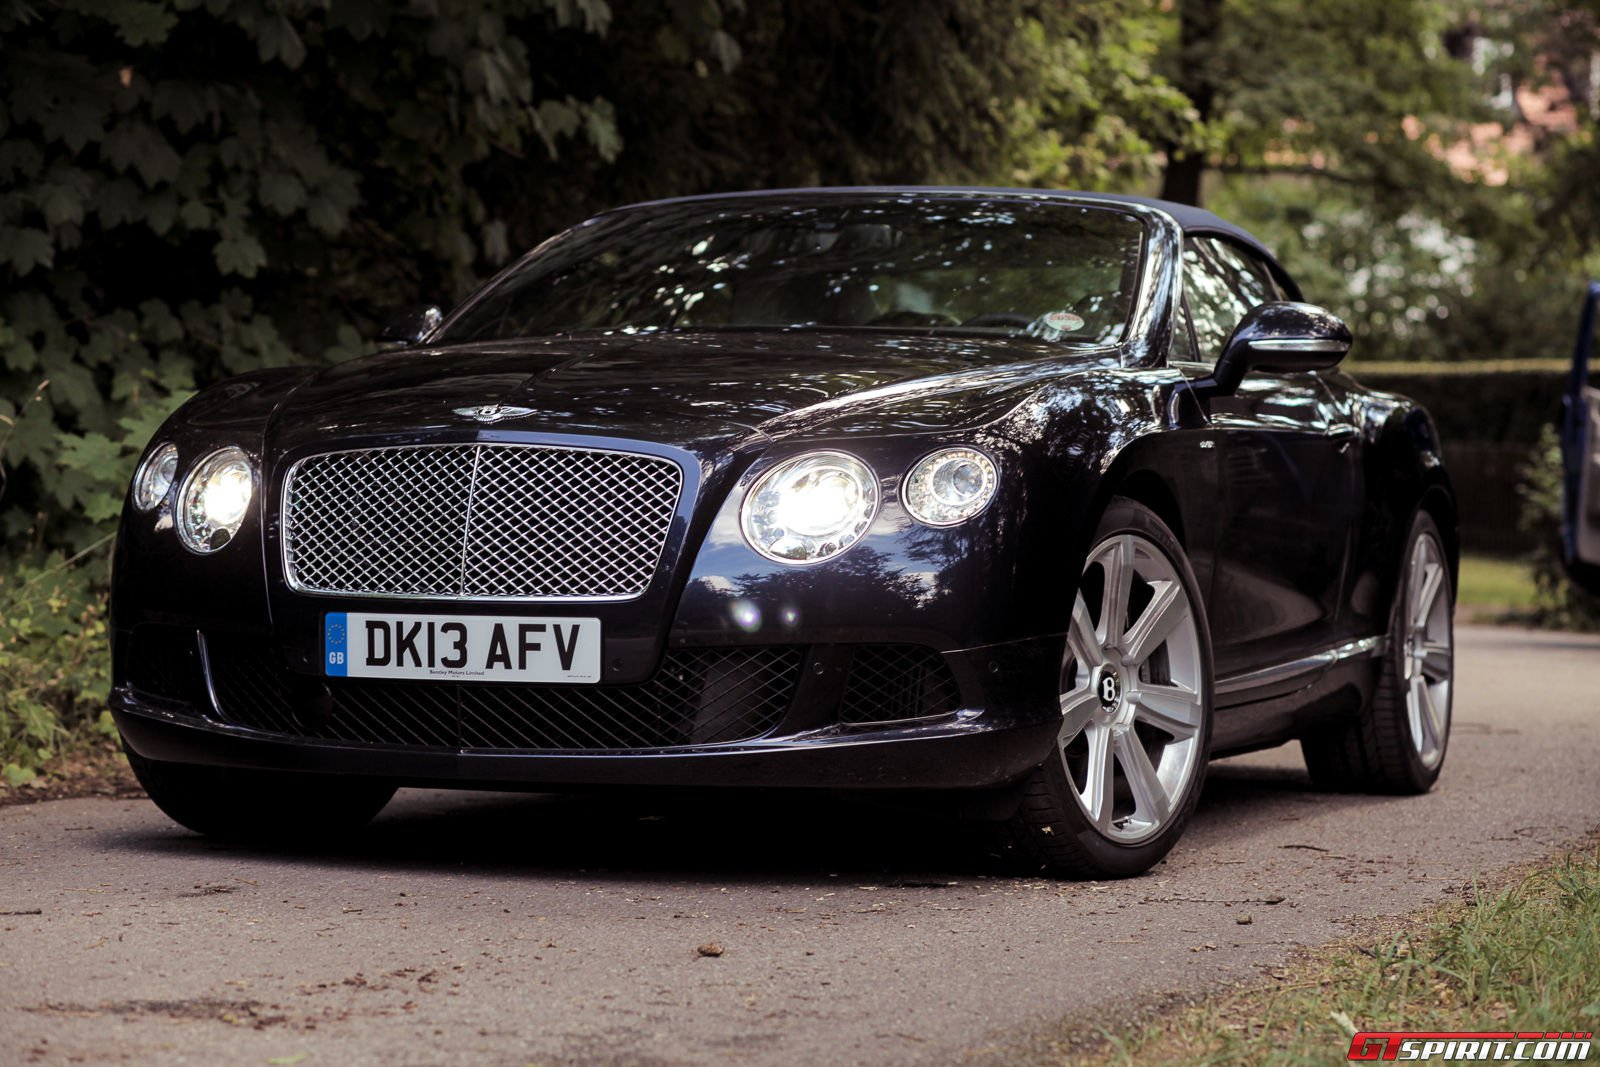 Road Test: 2013 Bentley Continental GTC W12 Review